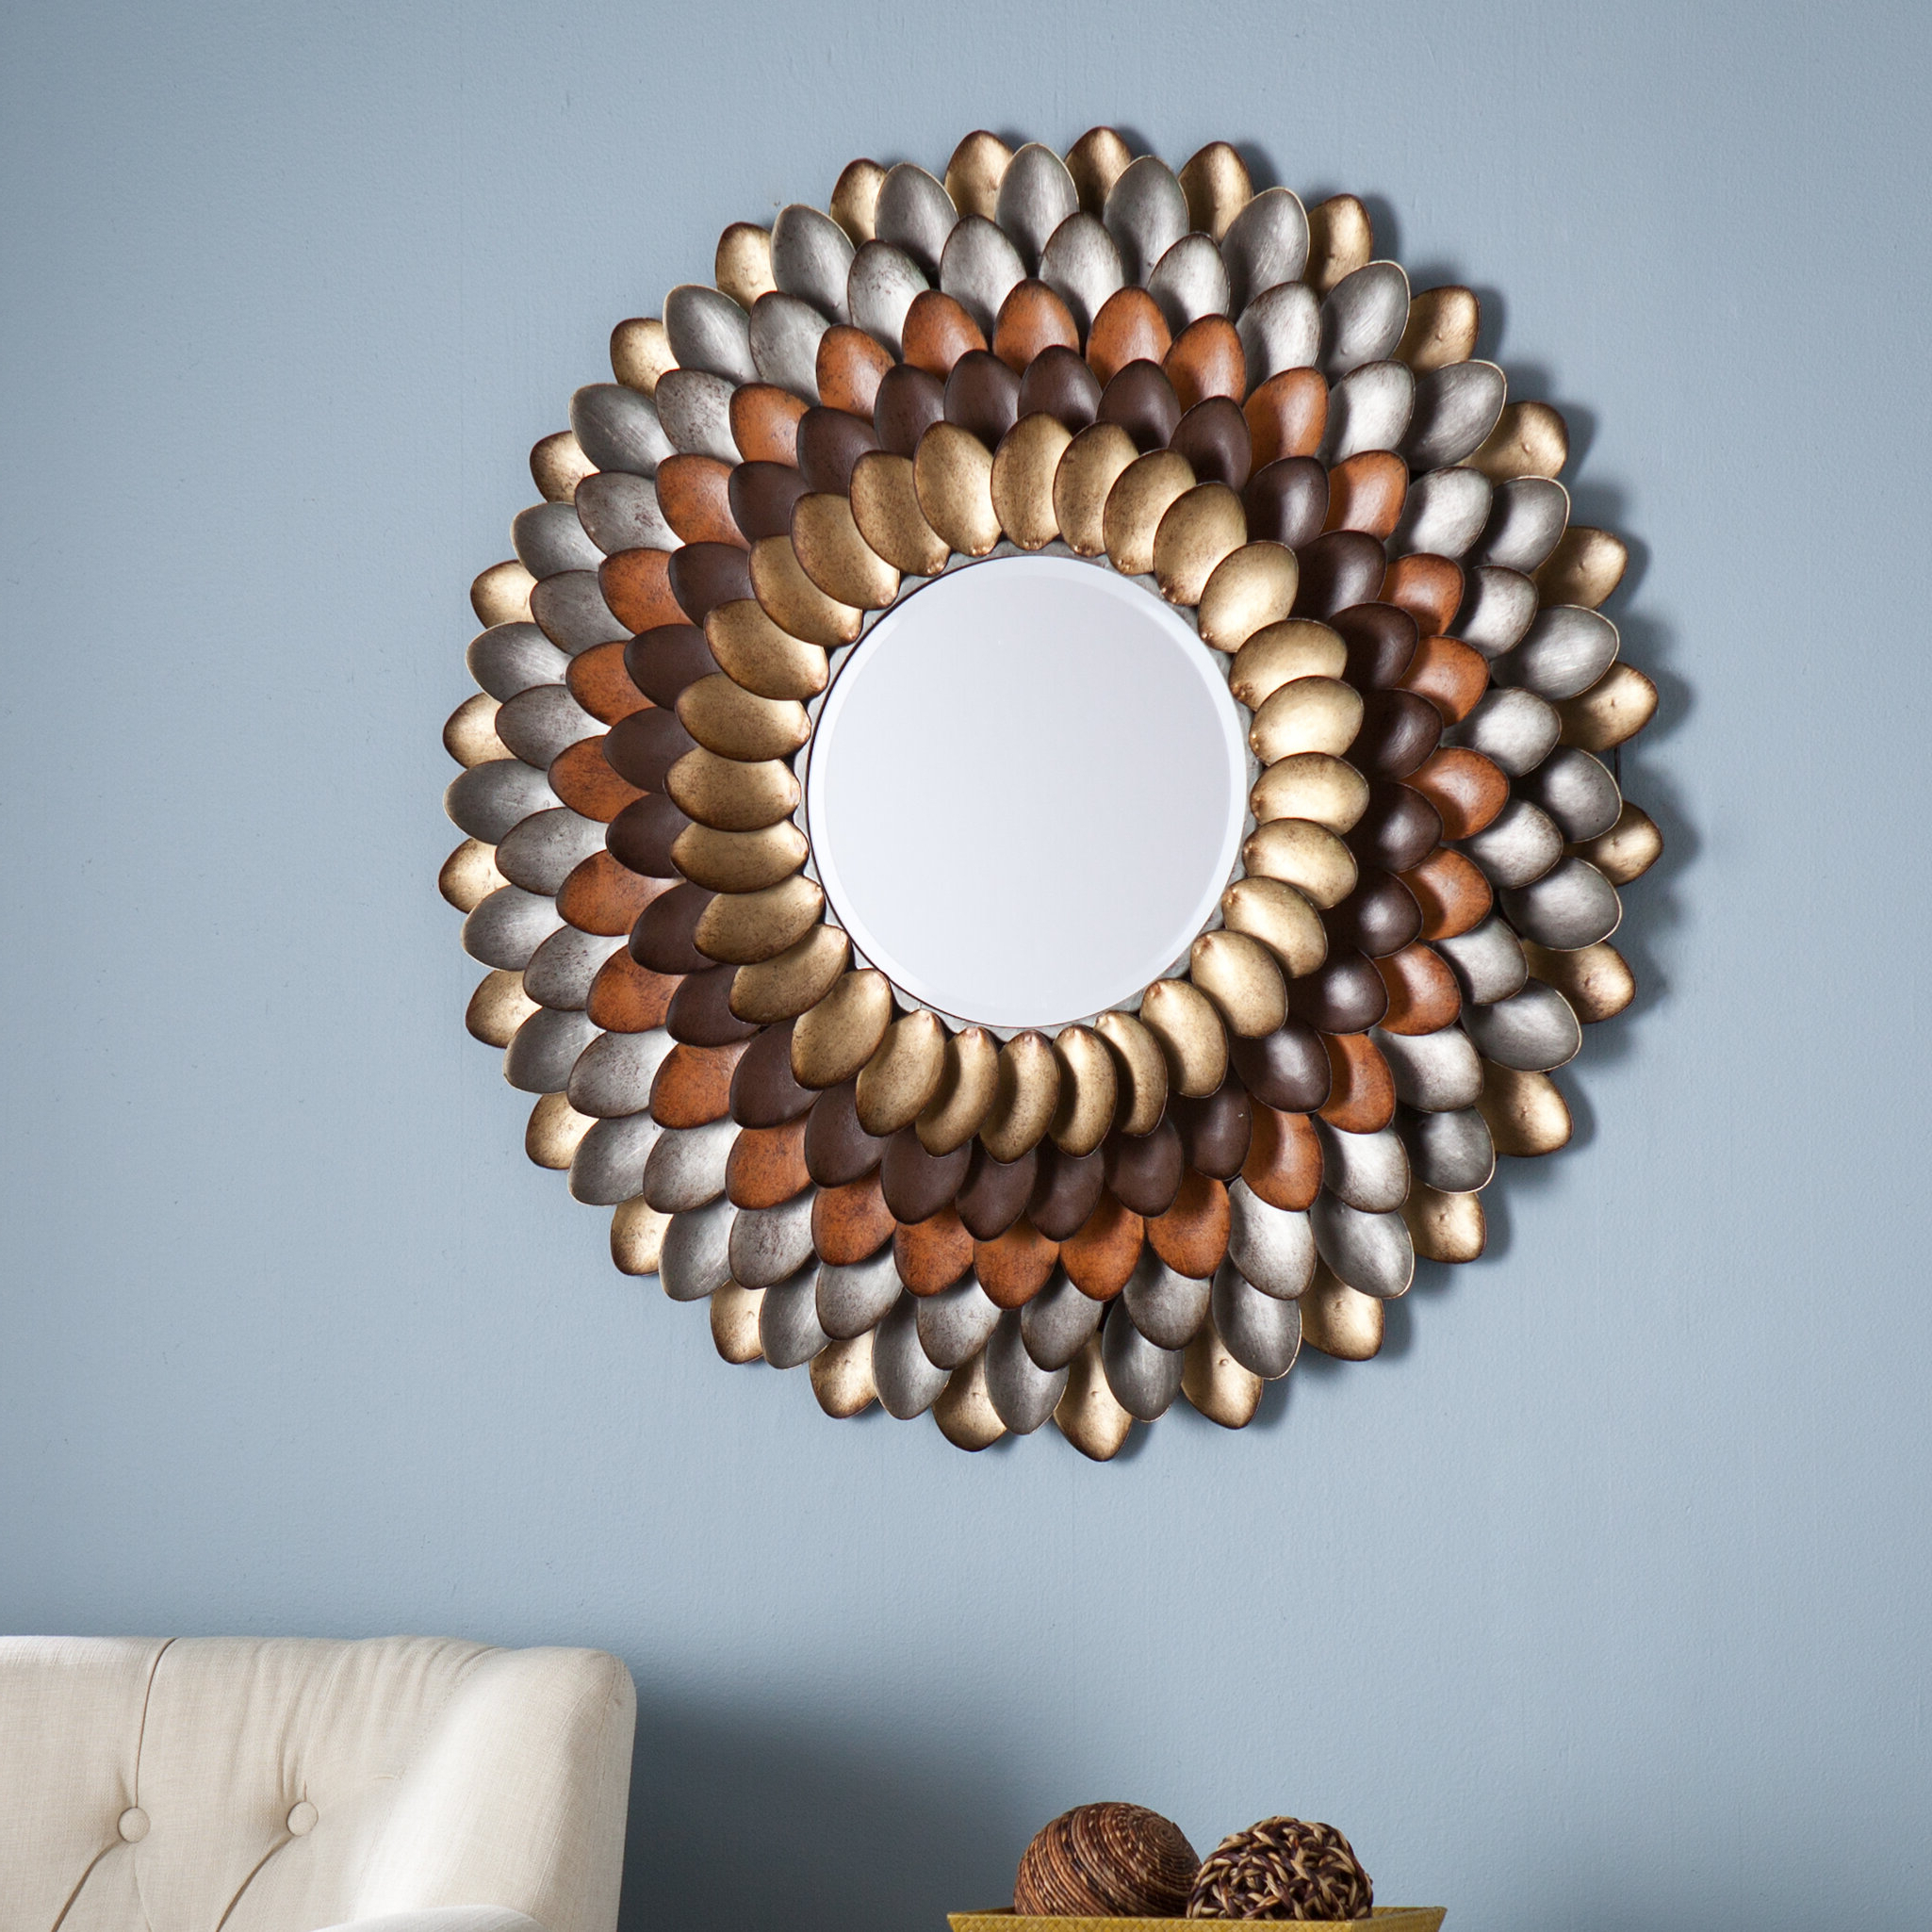 Most Recent Decorative Round Wall Mirror Within Believe Metal Wall Décor By Red Barrel Studio (View 11 of 20)